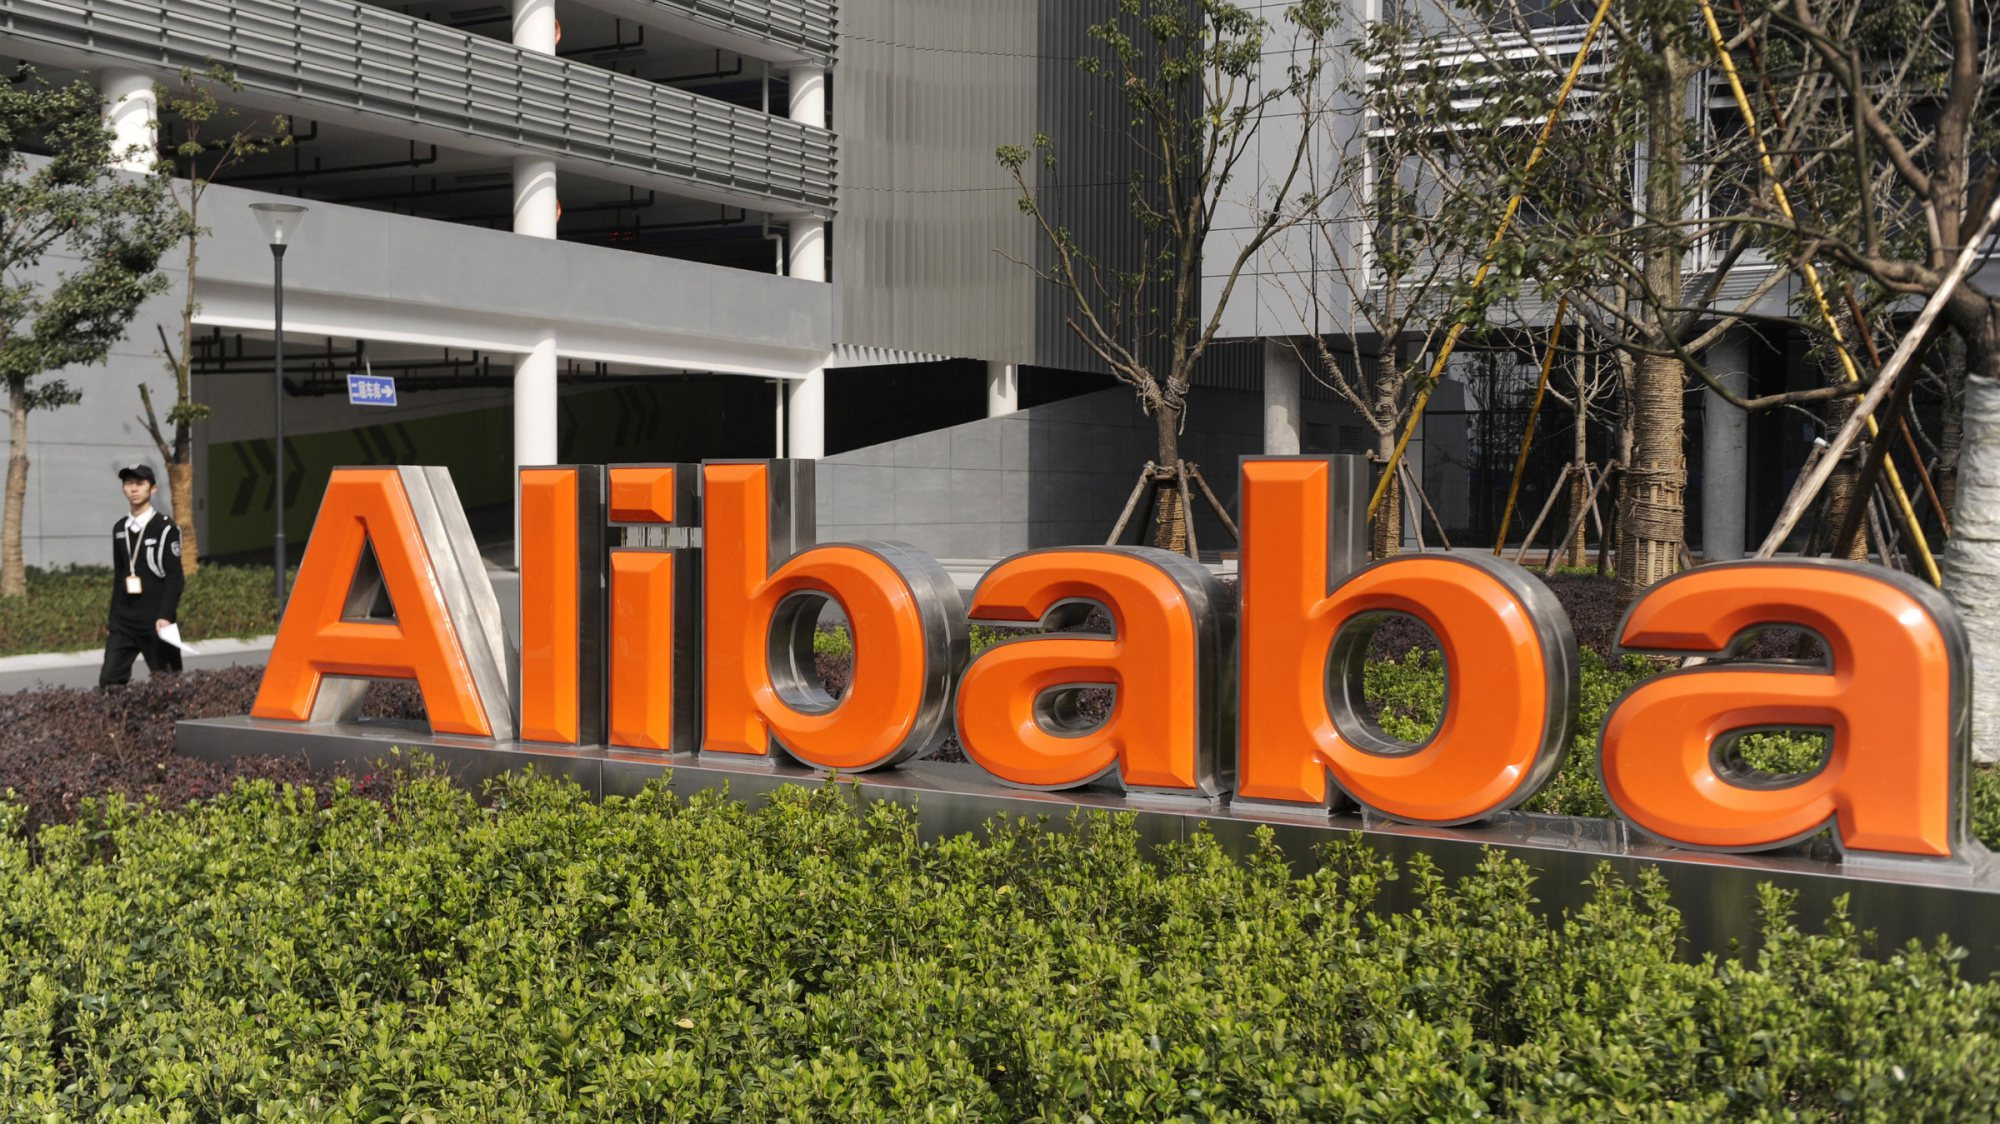 alibaba-group-chinese-public-company-zrd0j8